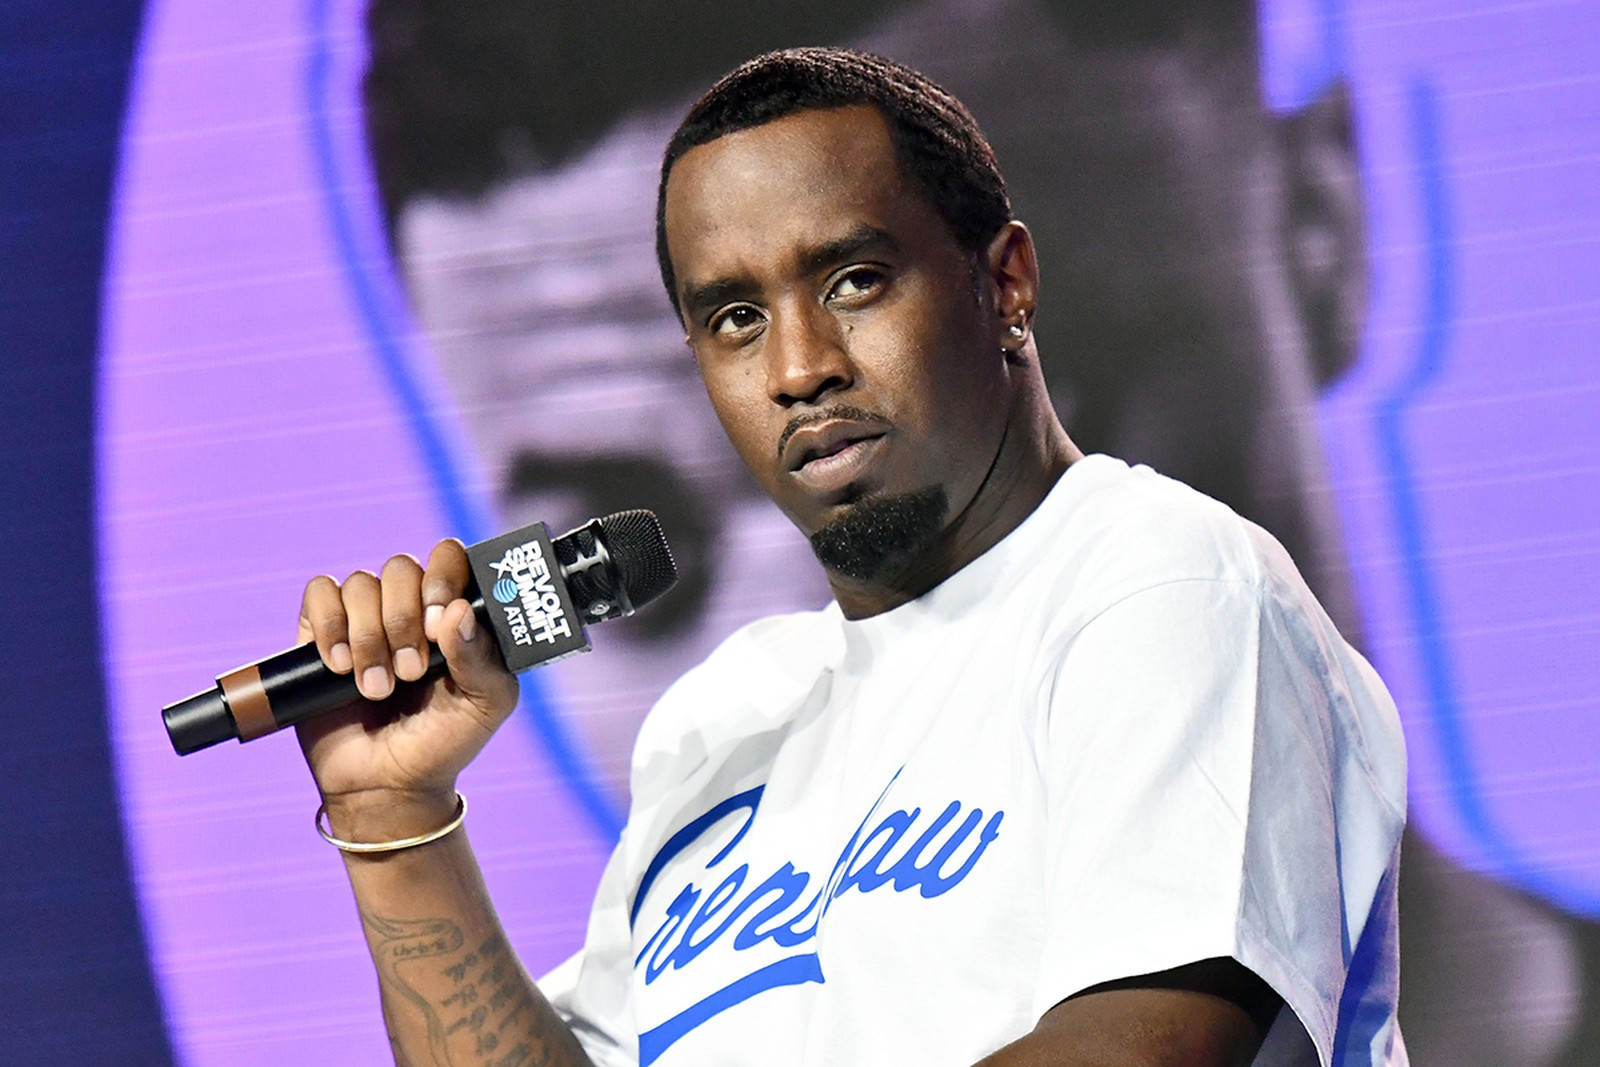 """""""diddy-says-he-once-woke-up-with-15-roaches-on-his-face-growing-up-and-the-internet-has-a-field-day-mocking-him"""""""